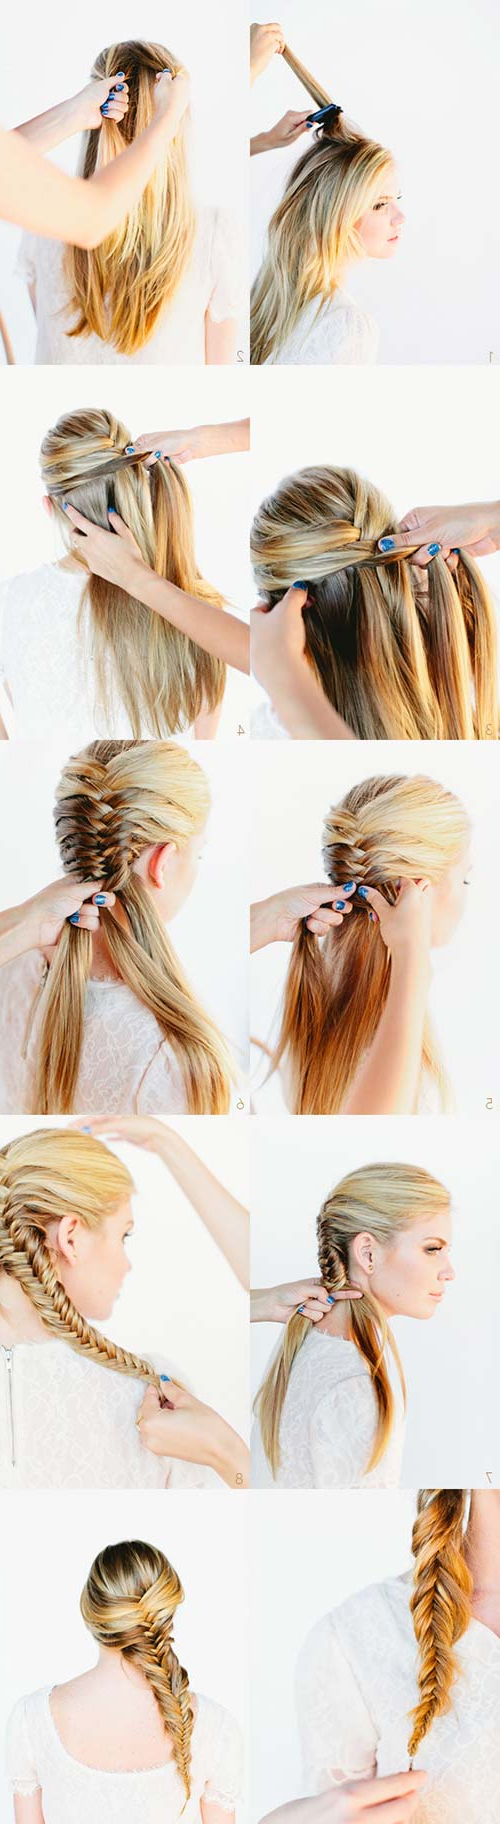 Most Current Messy Side Fishtail Braid Hairstyles For 11 Unique Fishtail Braid Hairstyles With Tutorials And Ideas (View 11 of 20)